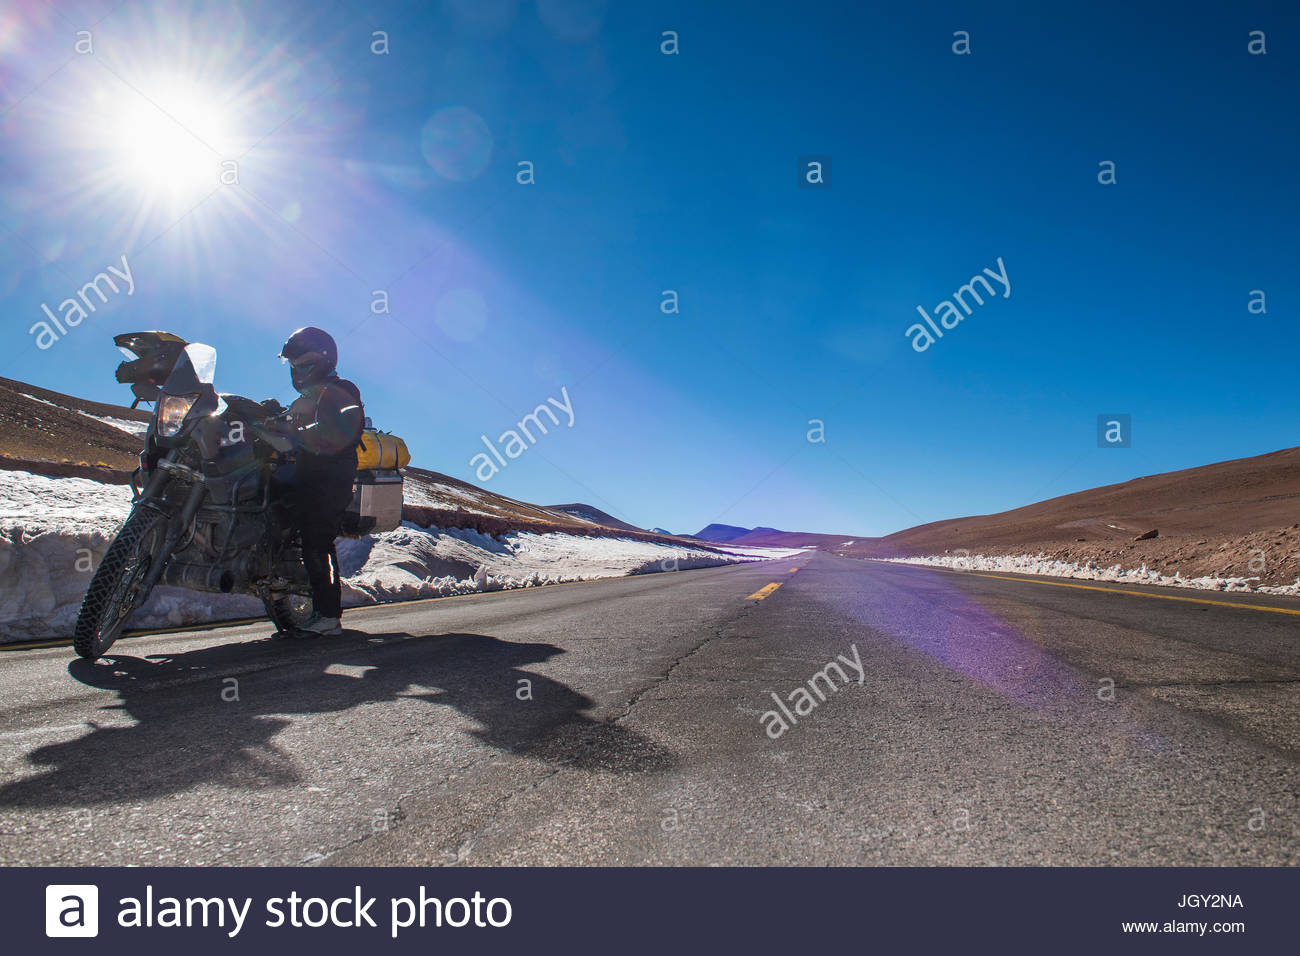 Woman beside motorbike, parked at side of road, Reserva Nacional Los Flamencos national park, Antofagasta, Chile, - Stock Image